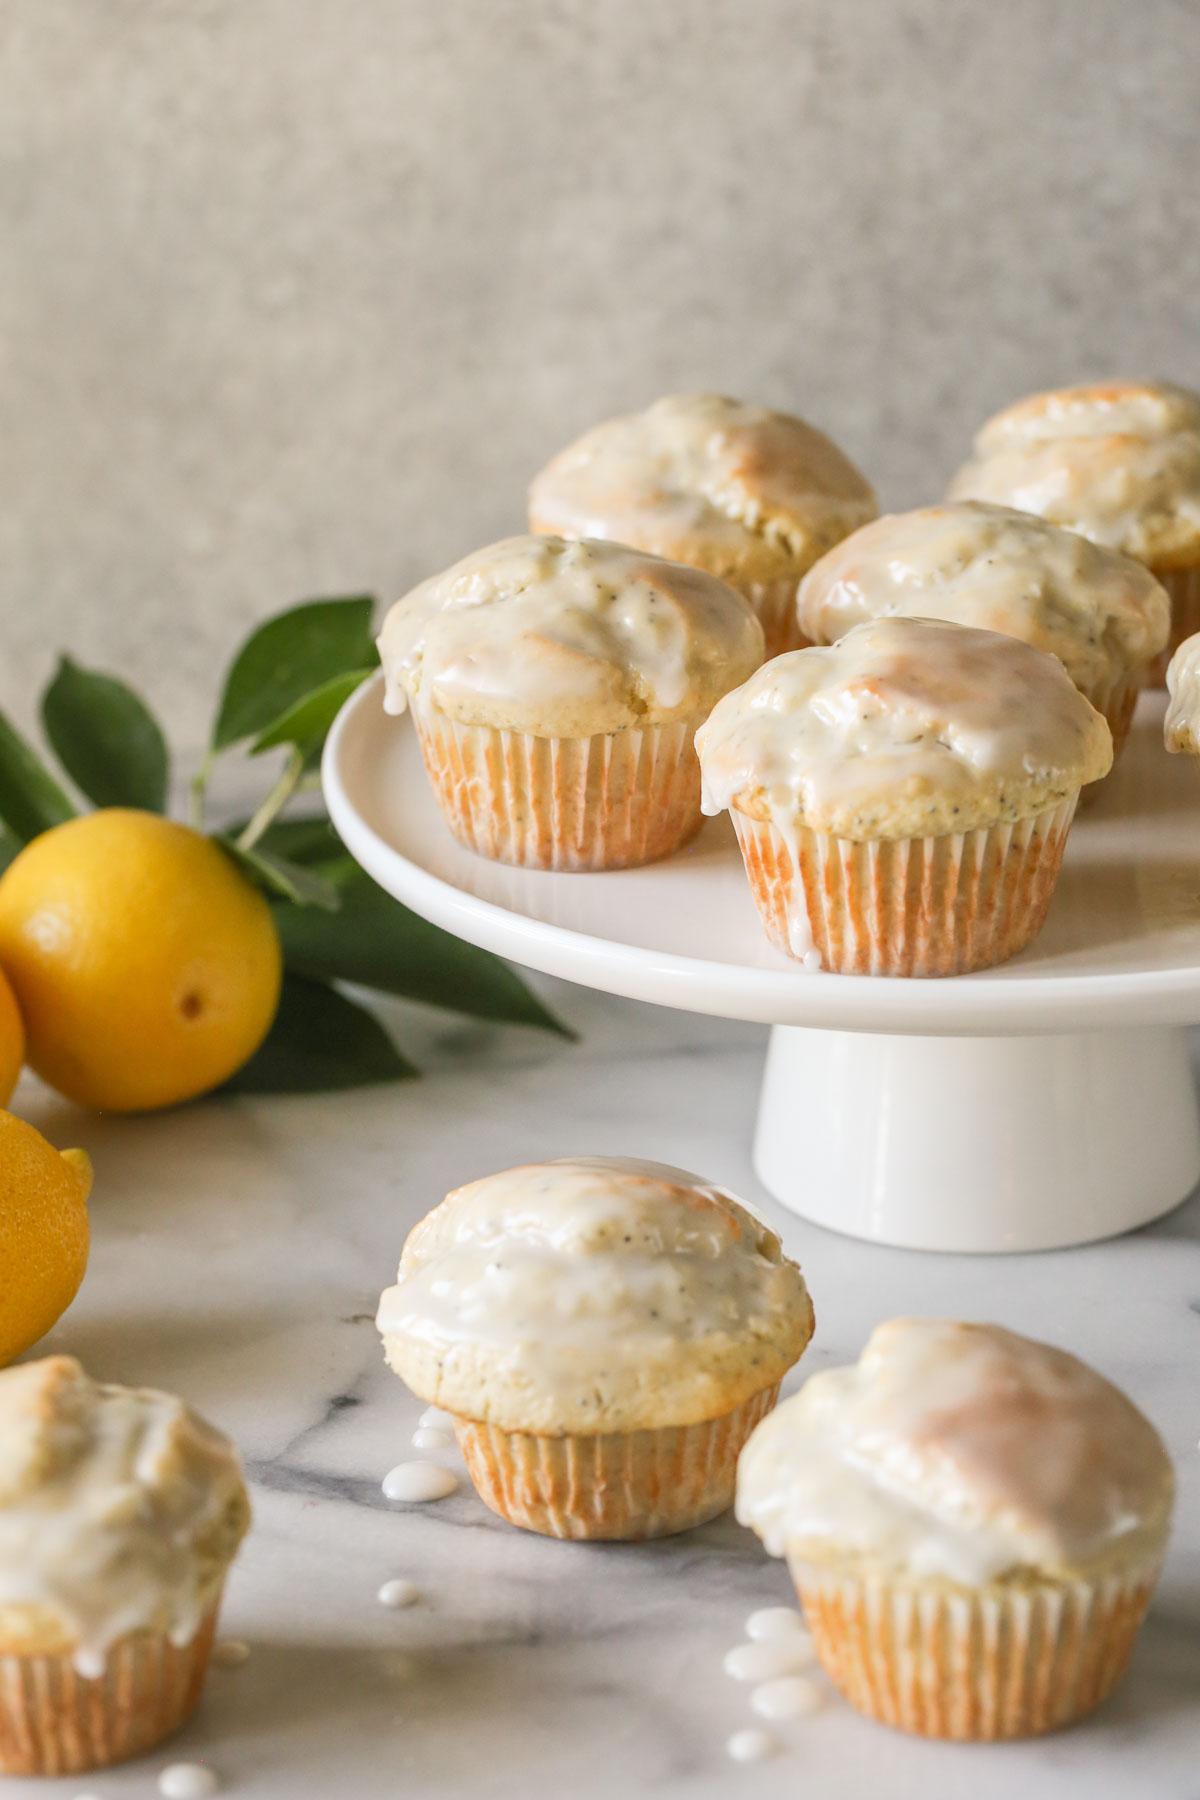 Glazed Lemon Poppy Seed Muffins on a cake stand with three muffins next to the stand, along with a branch from a lemon tree and whole lemons.